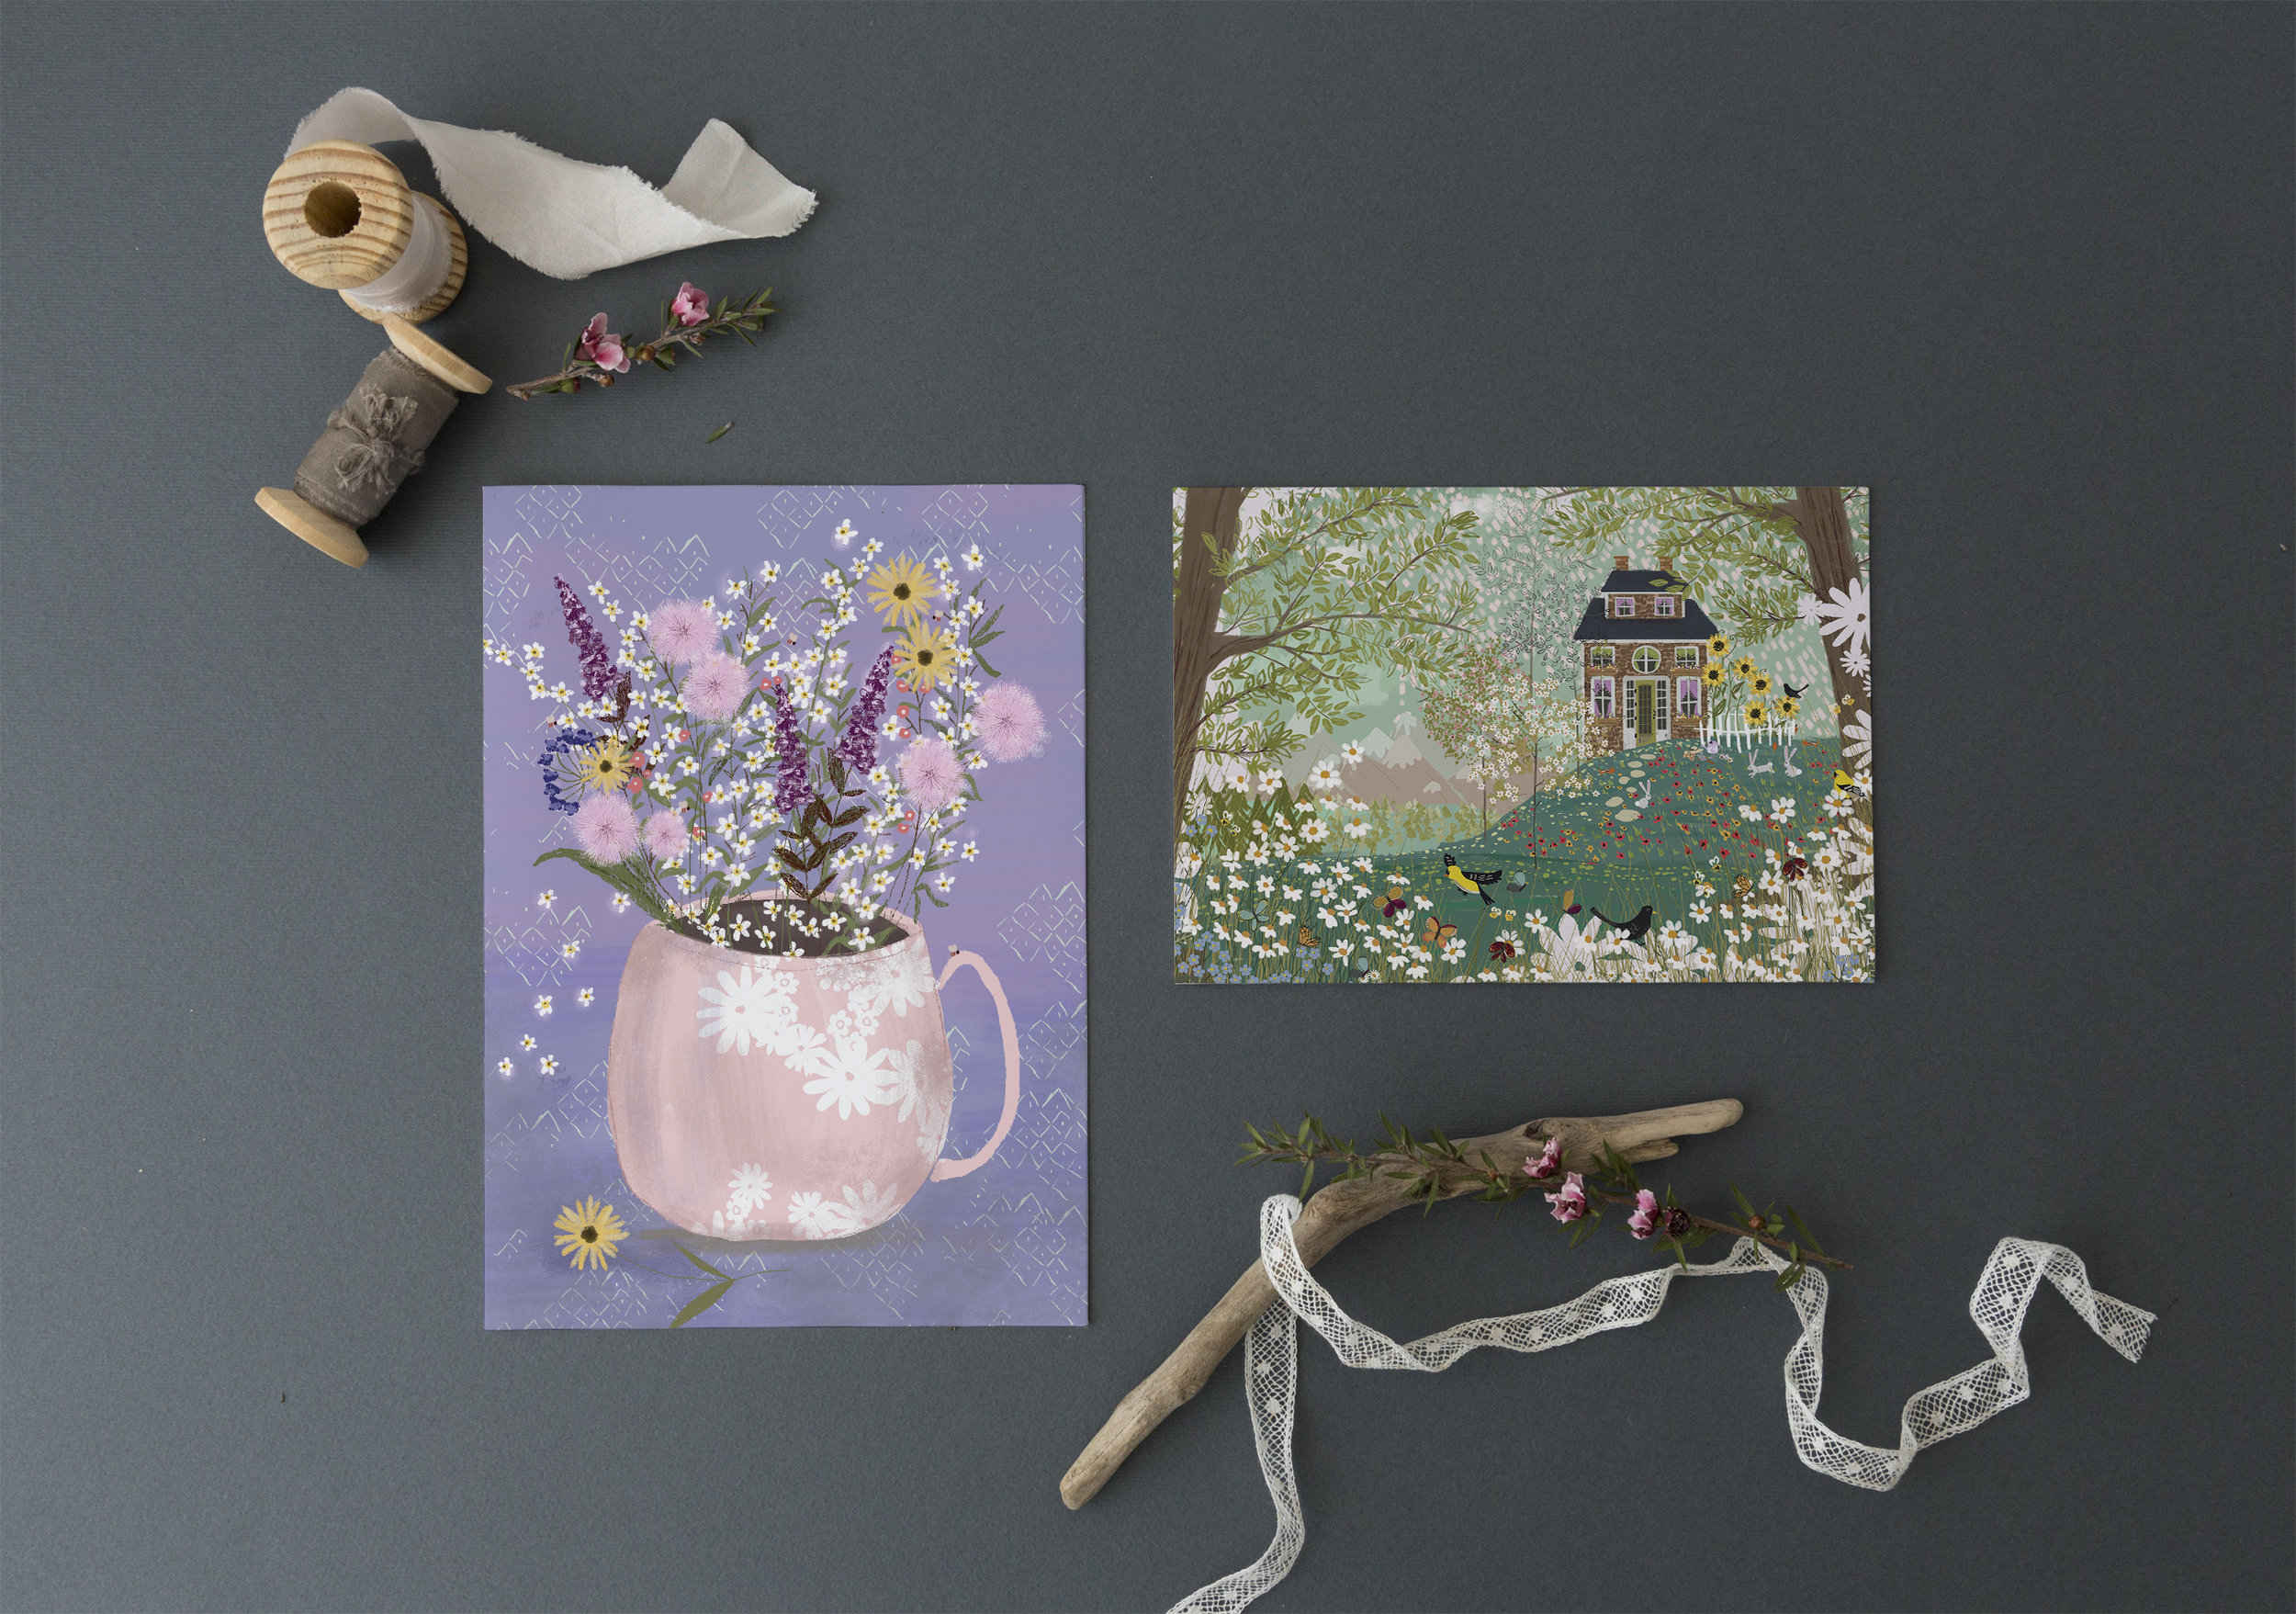 Wildflowers Gathered and Garden Dream by Joy Laforme for Design House Greetings